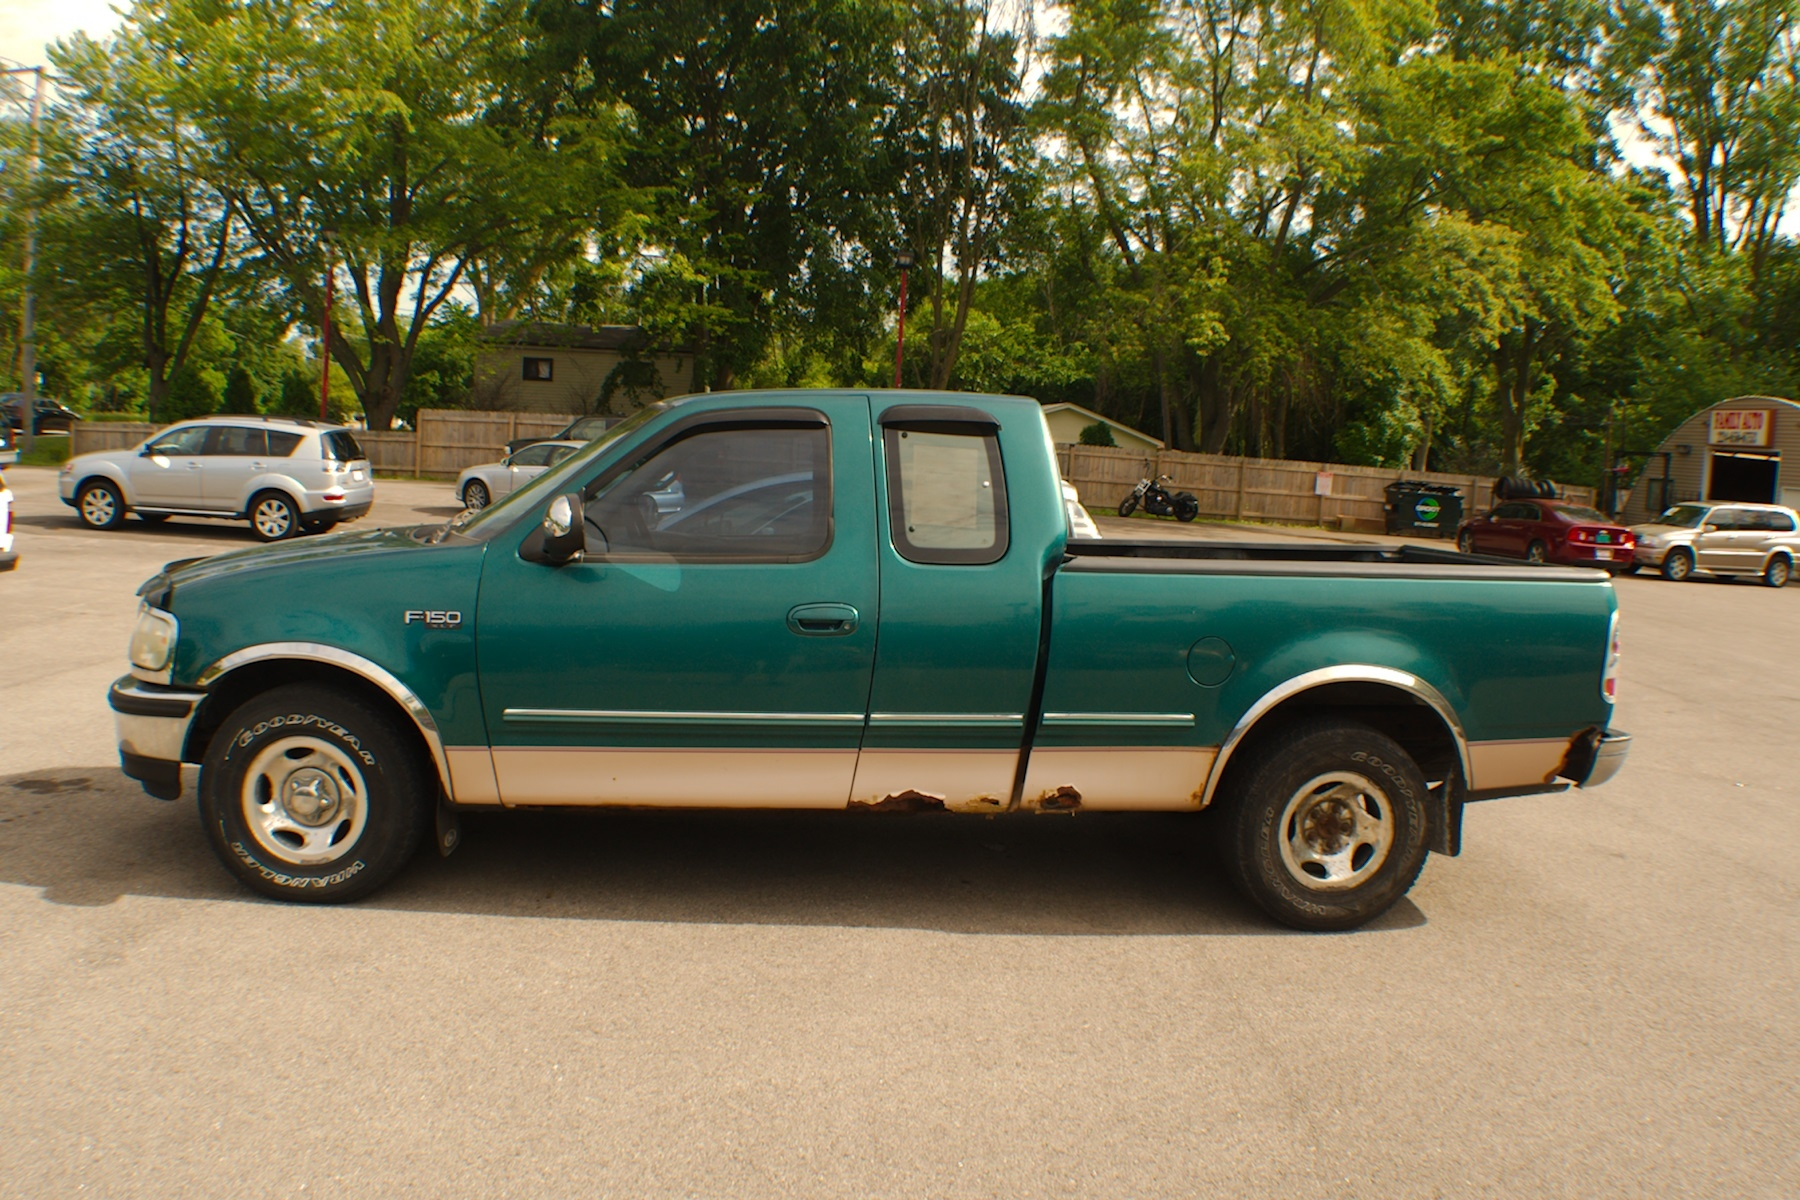 1997 Ford F150 XLT Green 4x2 Reg Cab Used Truck Sale Antioch Zion Waukegan Lake County Illinois